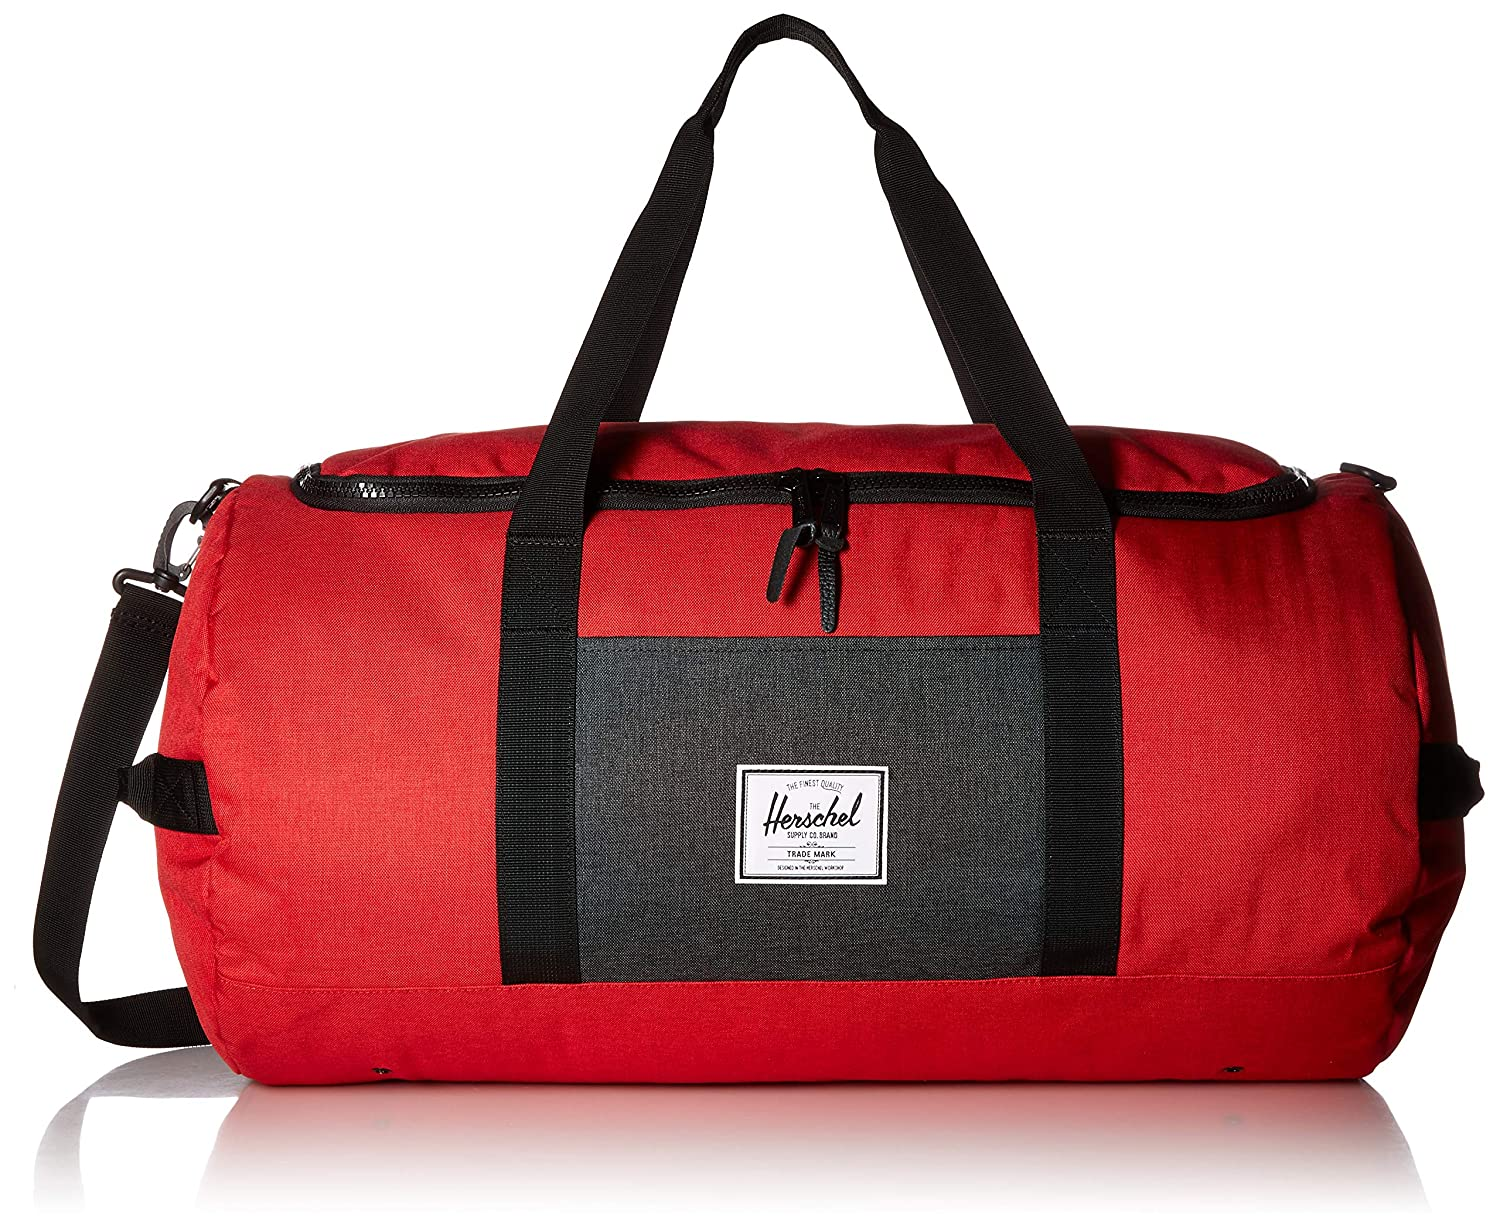 Herschel Supply Company AW15  HOL Sport Duffel - Rouge - taille unique Herschel Luggage child code 10348-02086-OS